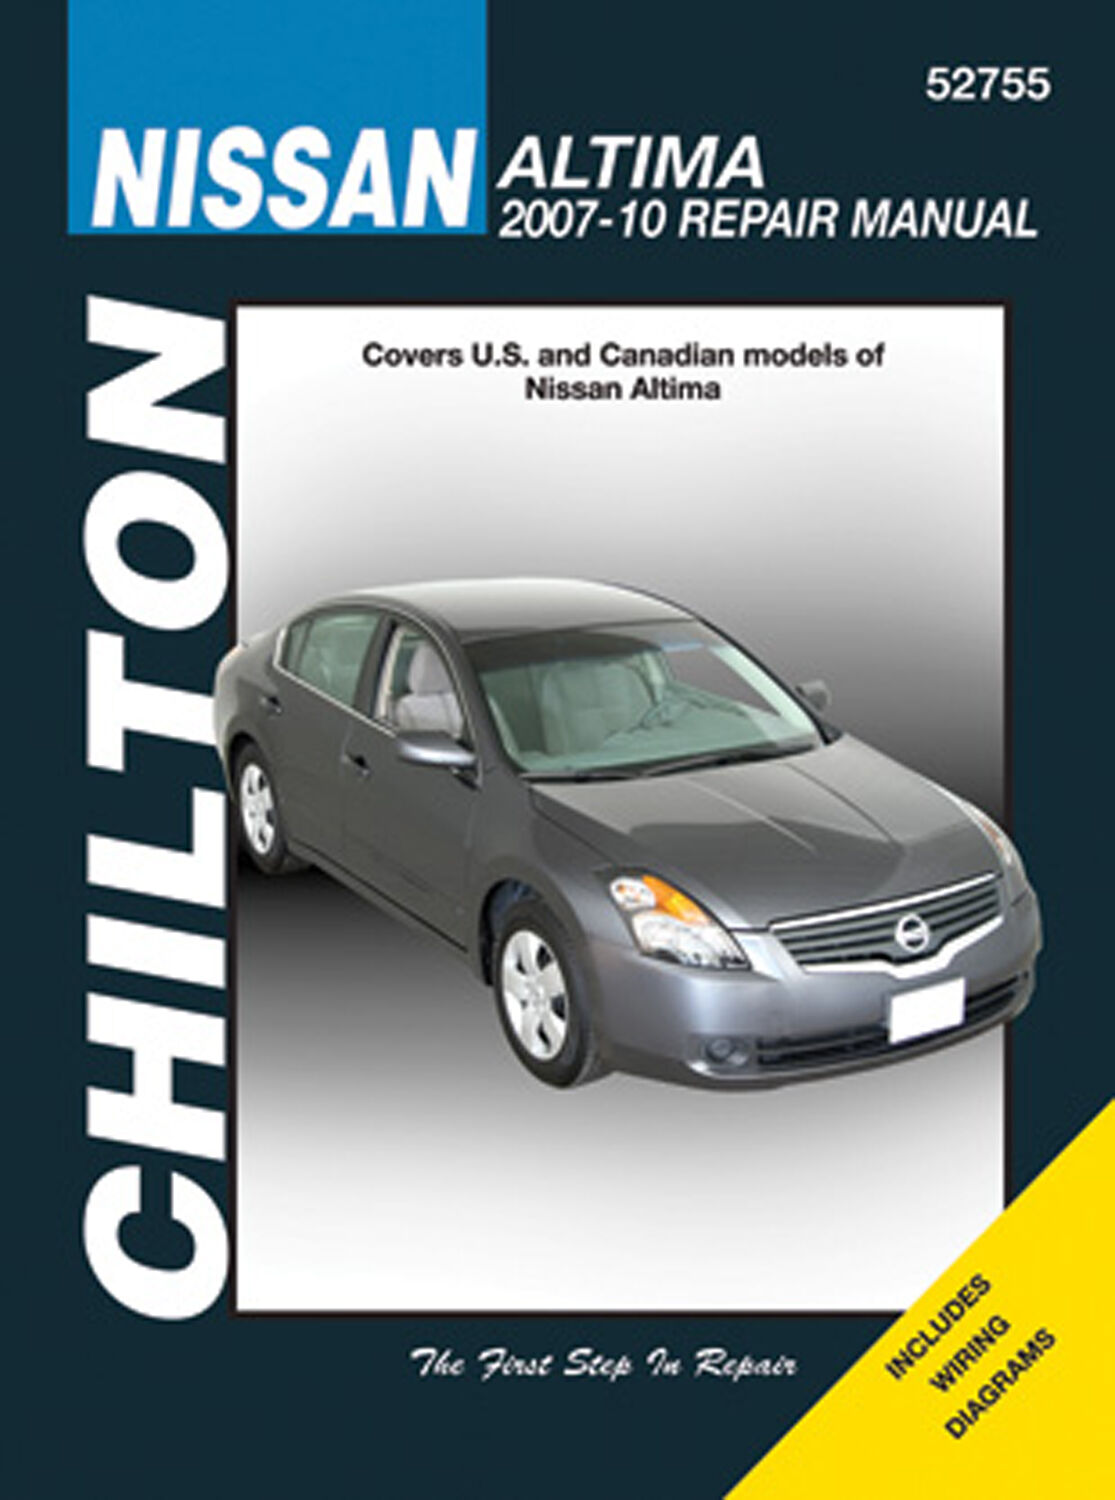 Repair Manual Chilton 52755 Fits 07 10 Nissan Altima Ebay Teana Wiring Diagram Stock Photo